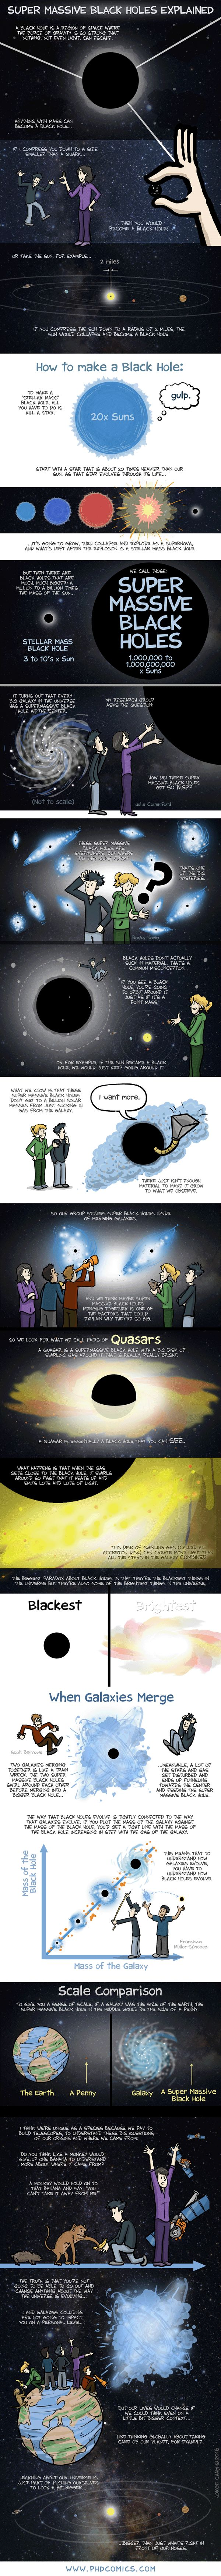 PHD Comics: Super Massive Black Holes